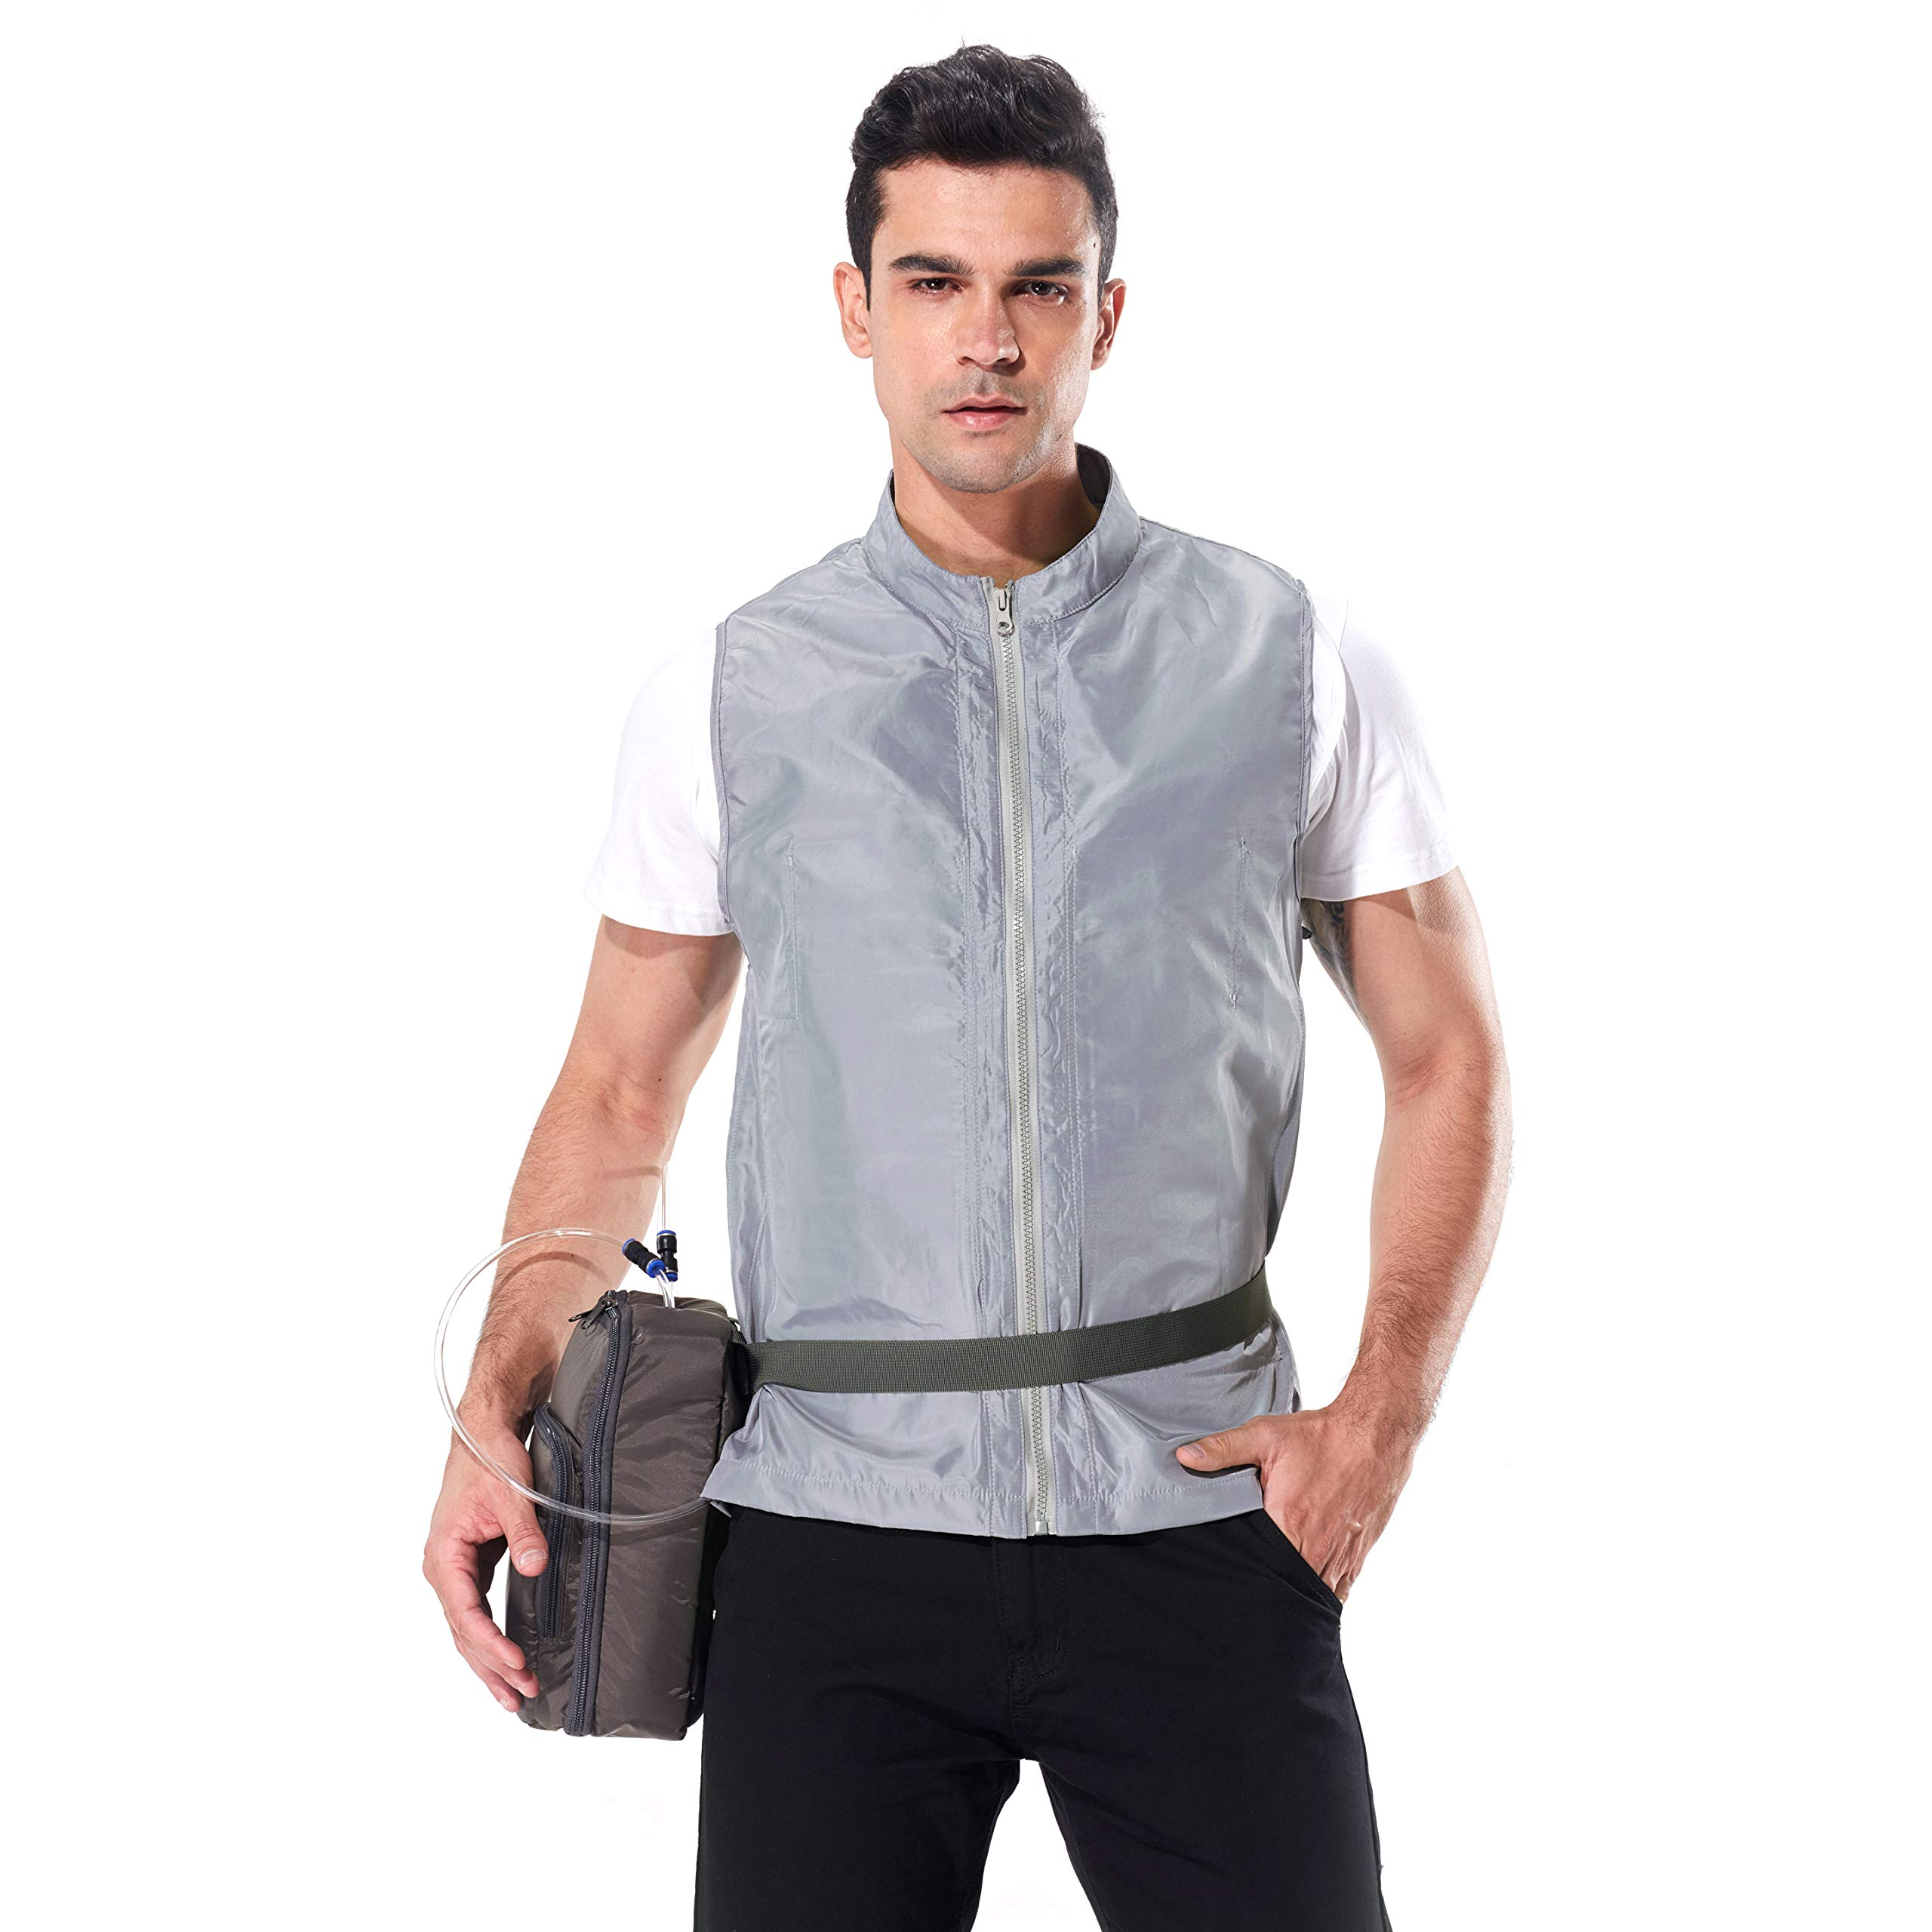 INNERNEED Personal Outerwear Cooling Vest, Ice Water Circulation Cooling System for Summer Outdoor Sports, Works